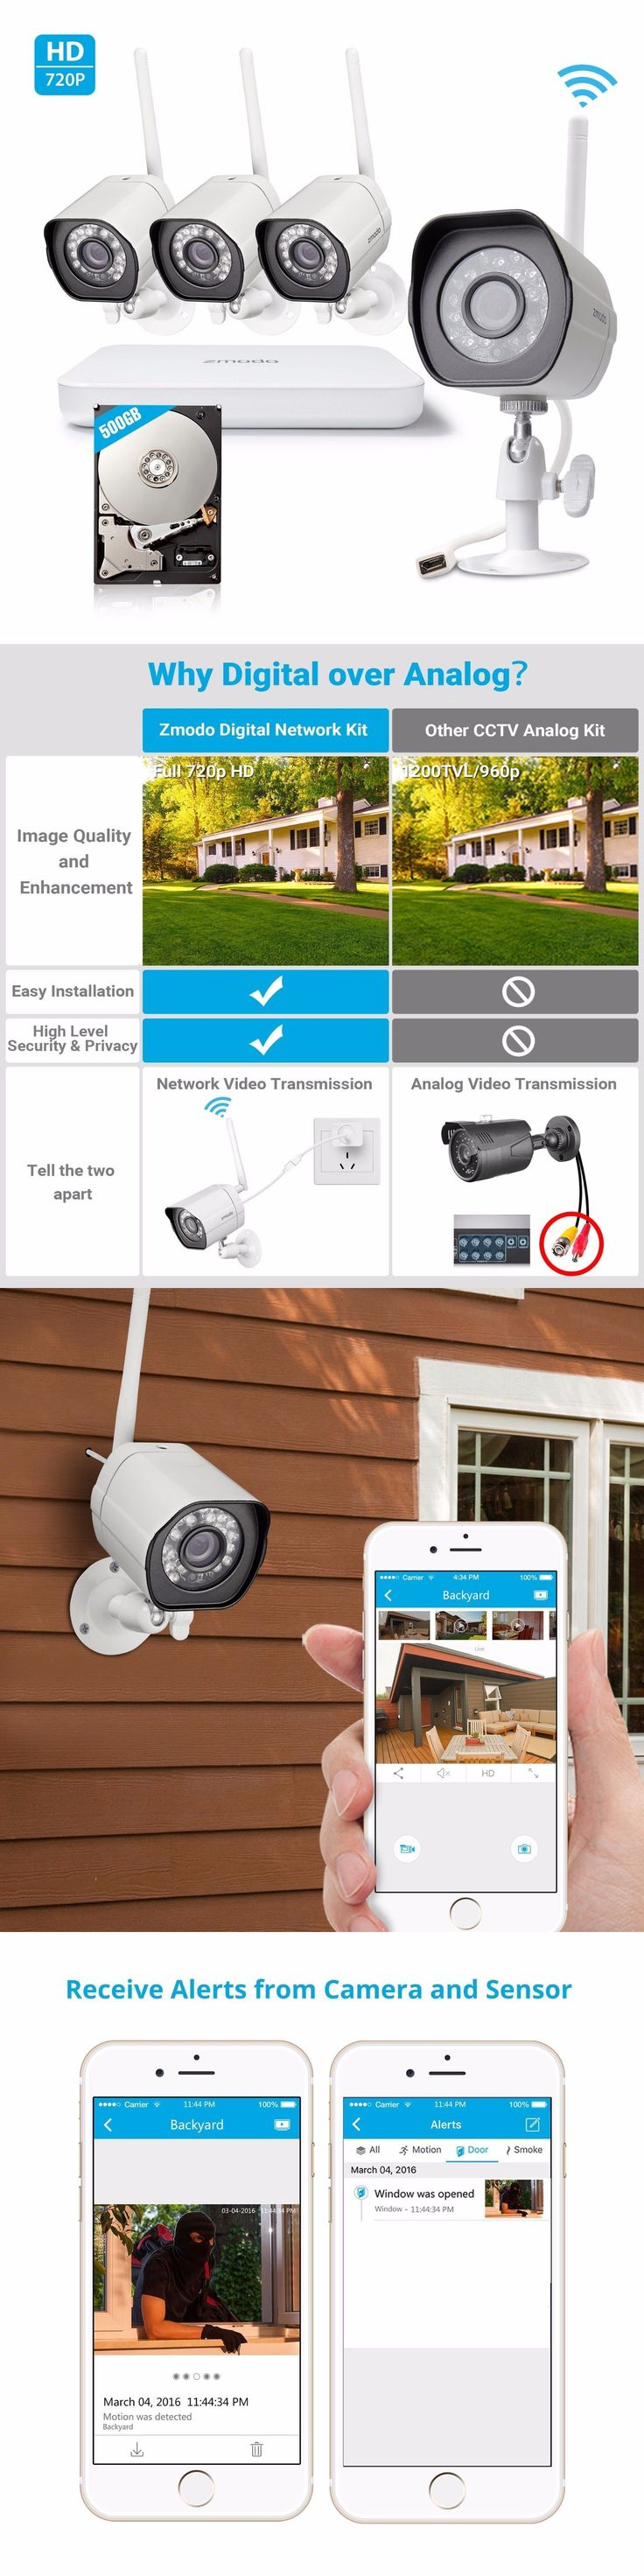 best Complete Security Systems images on Pinterest Decals